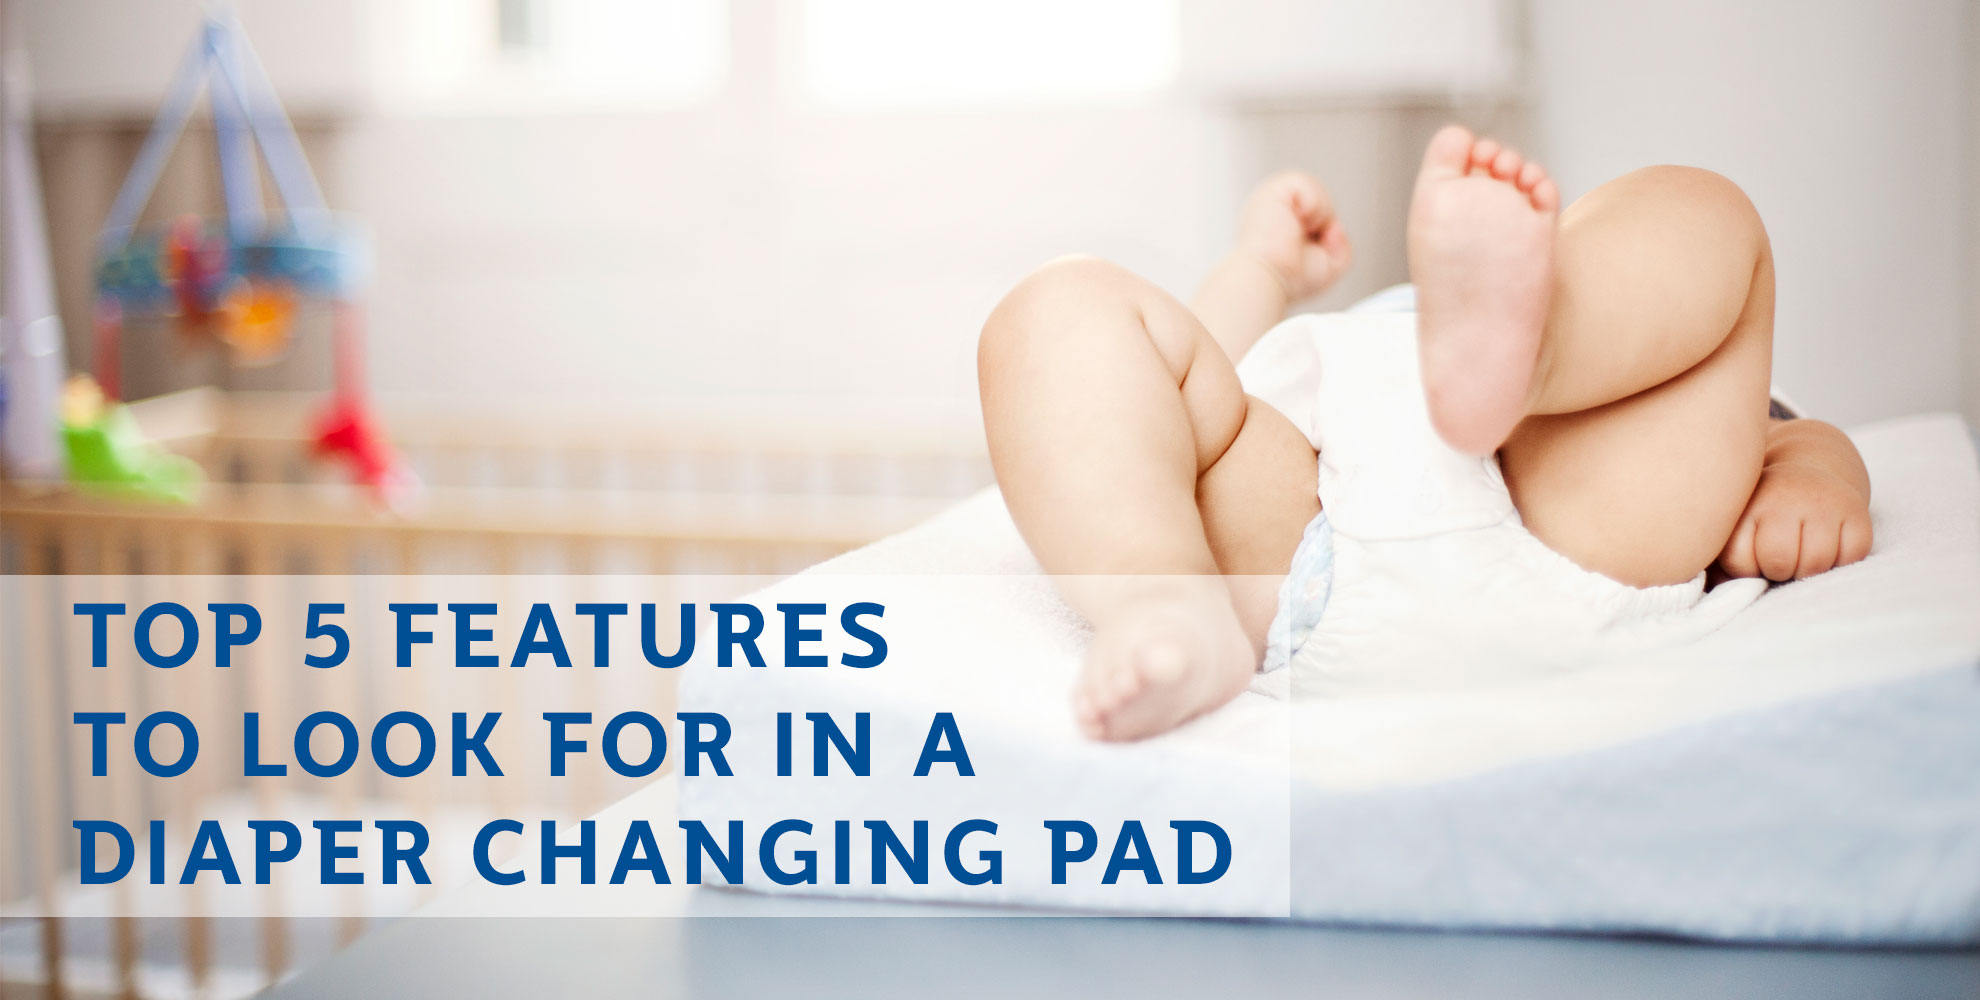 Image of baby laying down on changing pad.